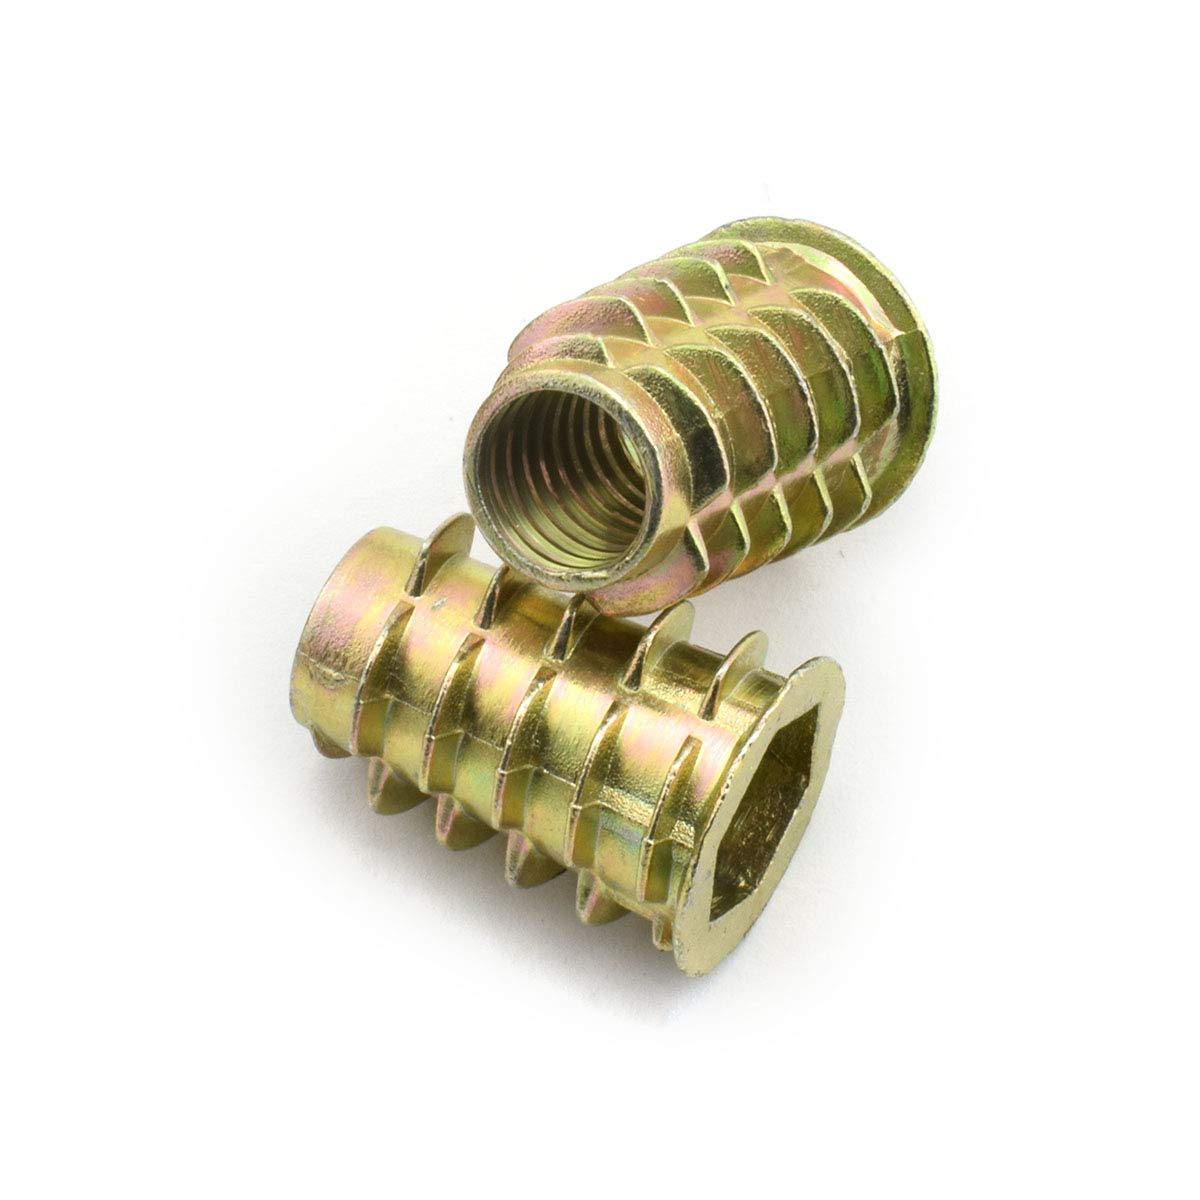 LQ Industrial 30pcs M8x25mm Furniture Screw-in Nut Zinc Alloy Bolt Fastener Connector Hex Socket Drive Threaded Insert Nuts For Wood Furniture Assortment